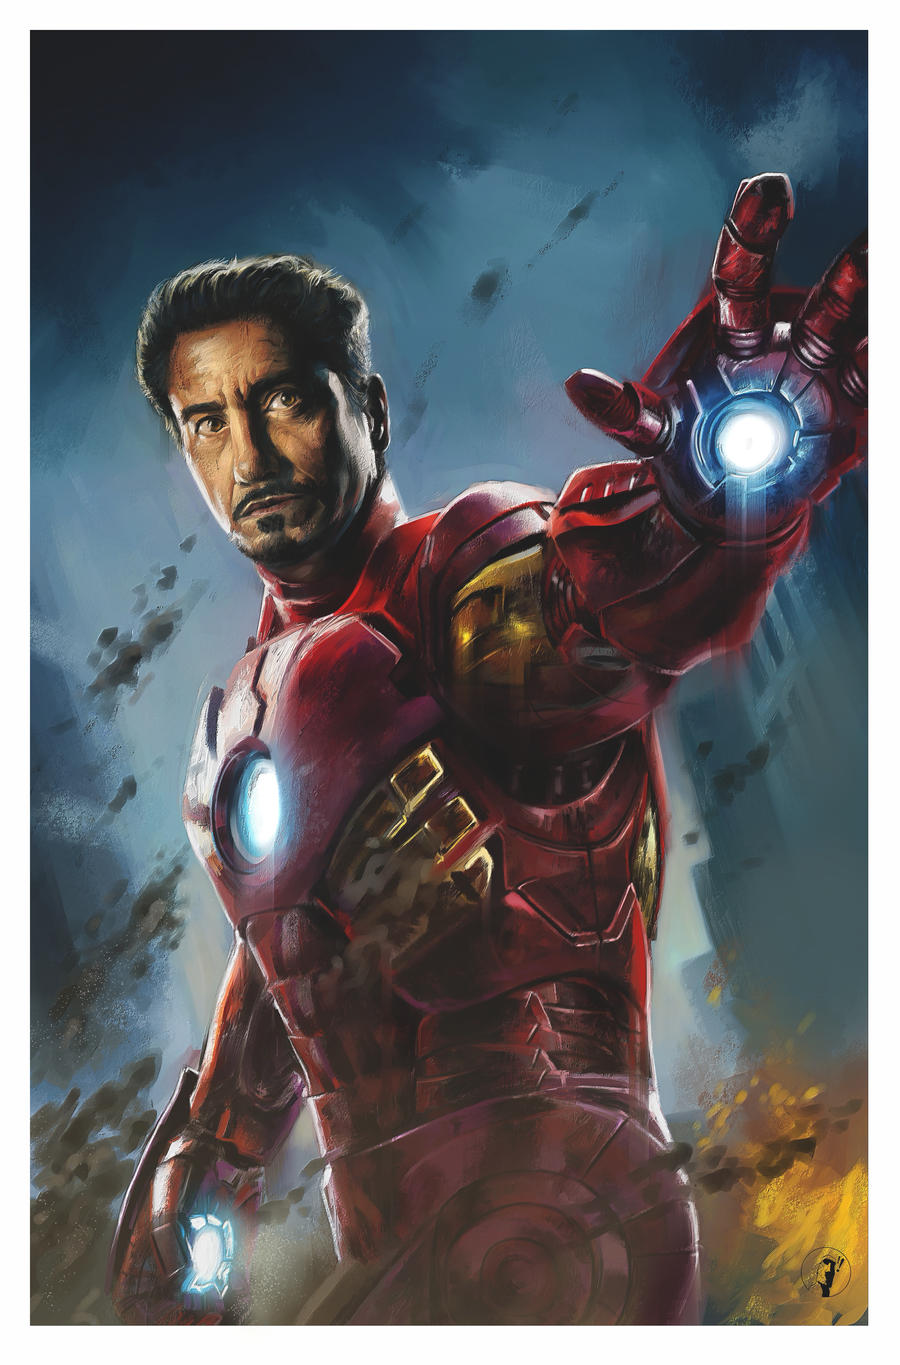 The Avengers - Iron Man by ISignRob on DeviantArt